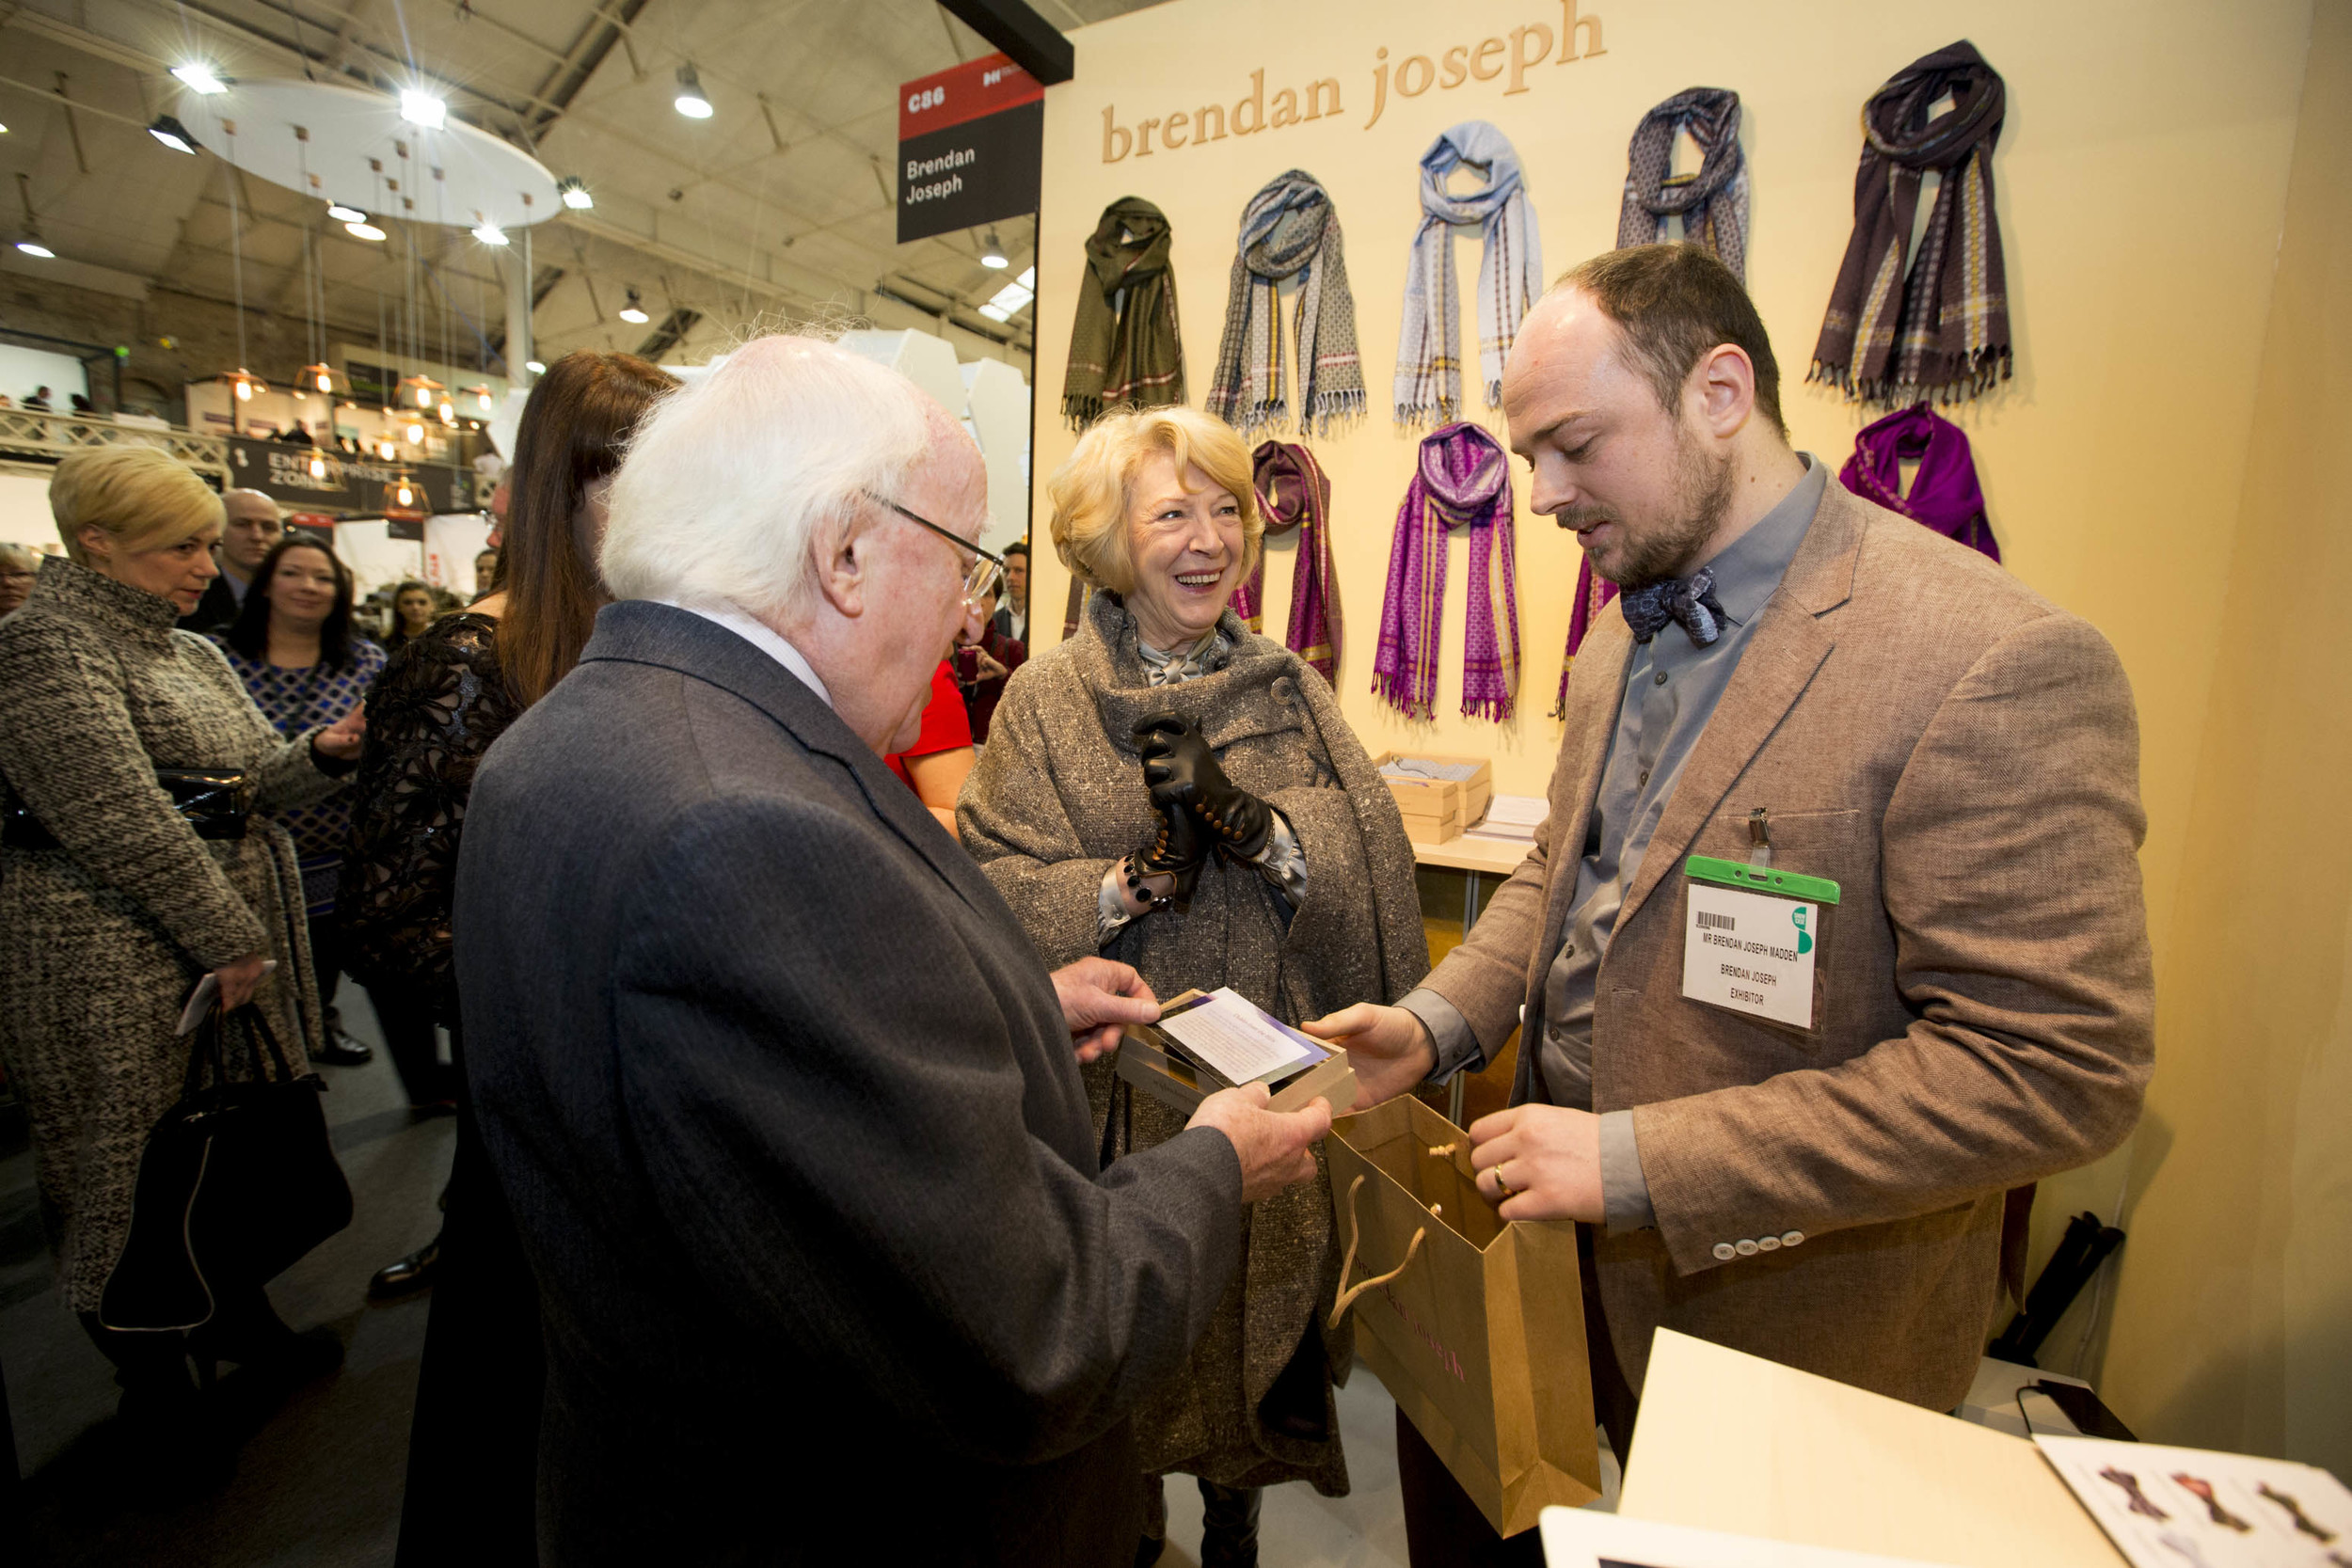 With President of Ireland, Michael D Higgins and his wife, Sabina Higgins at Brendan Joseph, Stand C86, Showcase 2015 in the RDS, Dublin.